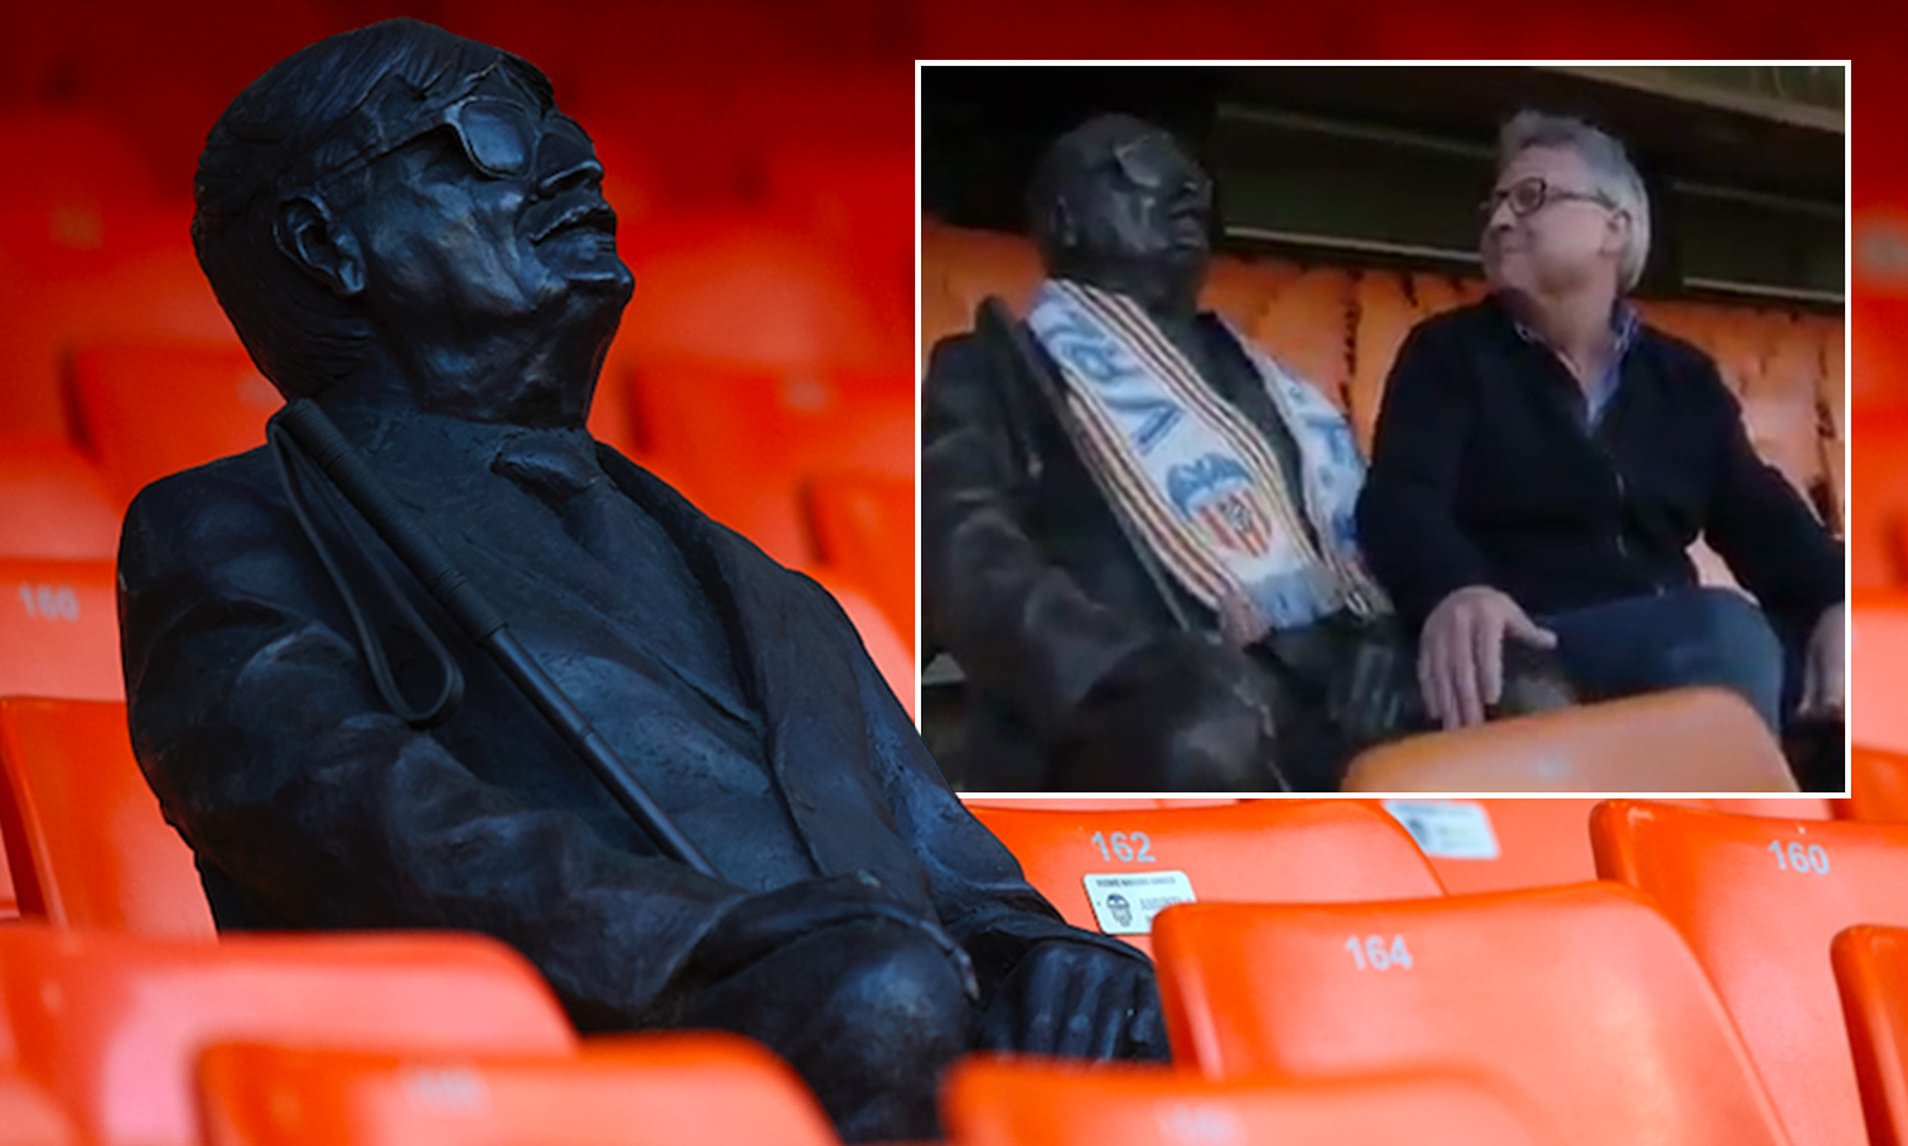 Valencia pays tribute to blind supporter two years after his death with a statue